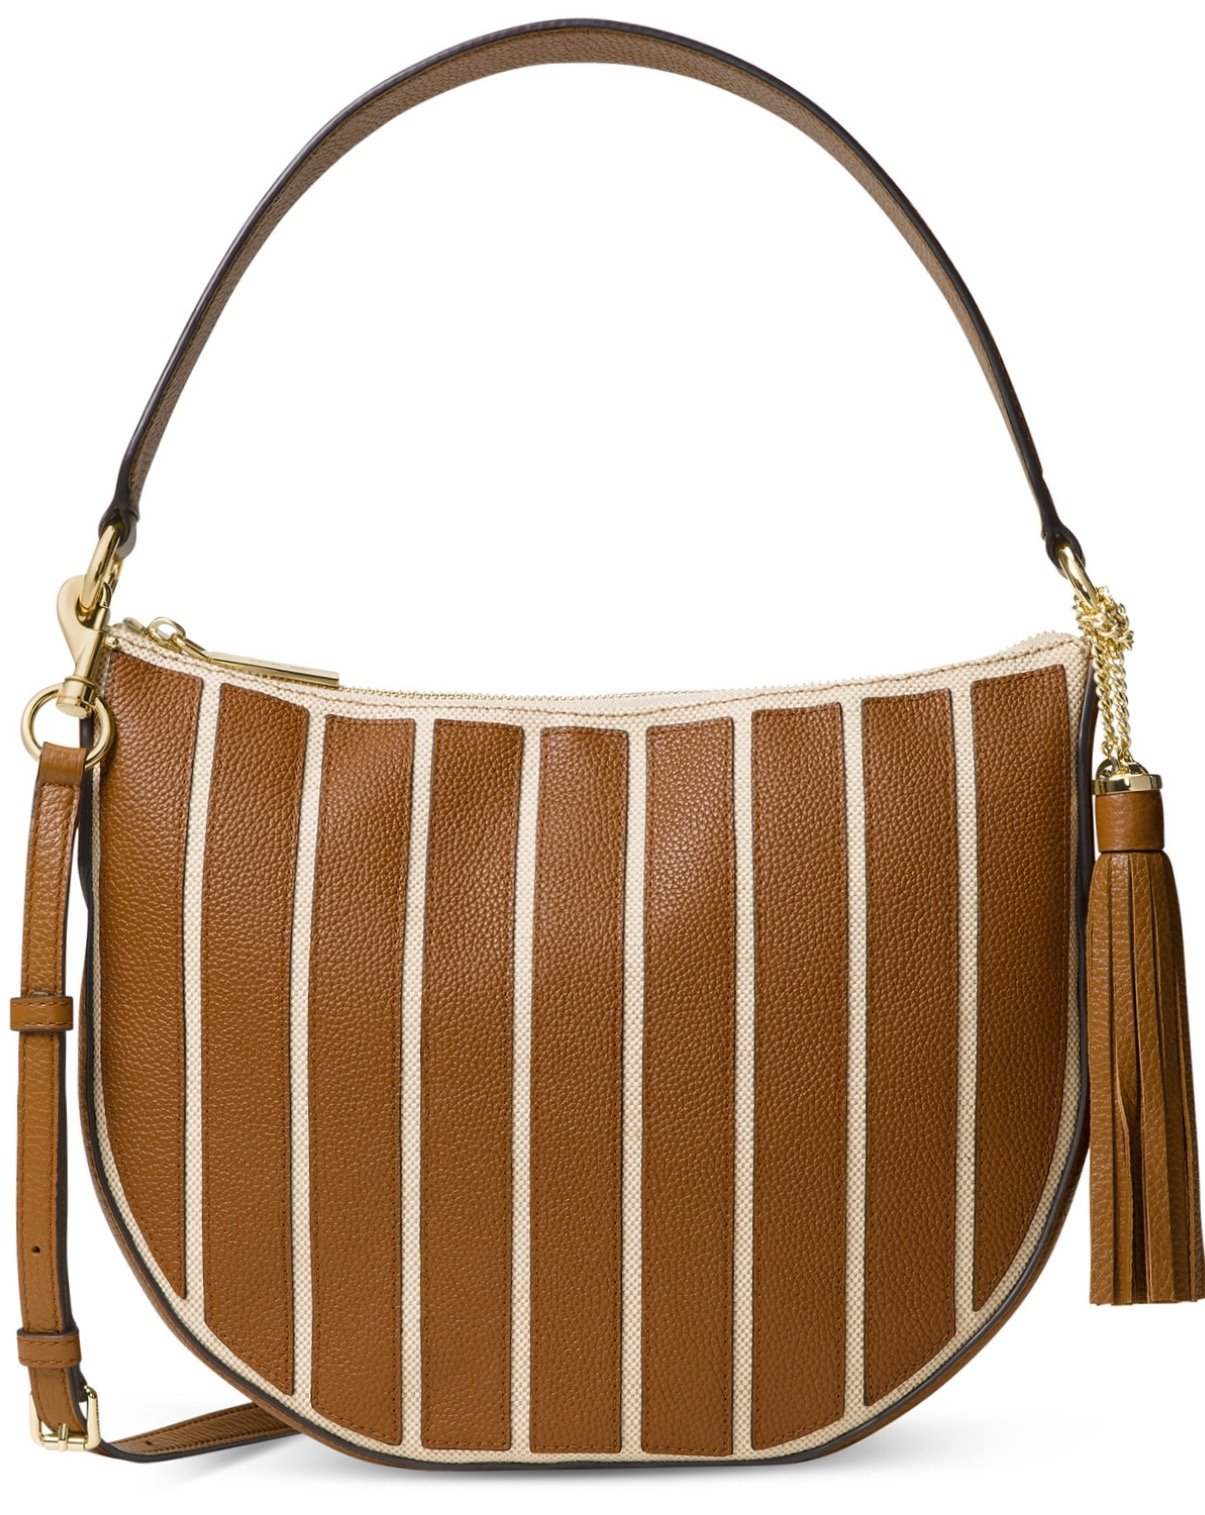 MICHAEL KORS Brooklyn Striped Large Convertible Hobo in Nat/Acorn $378